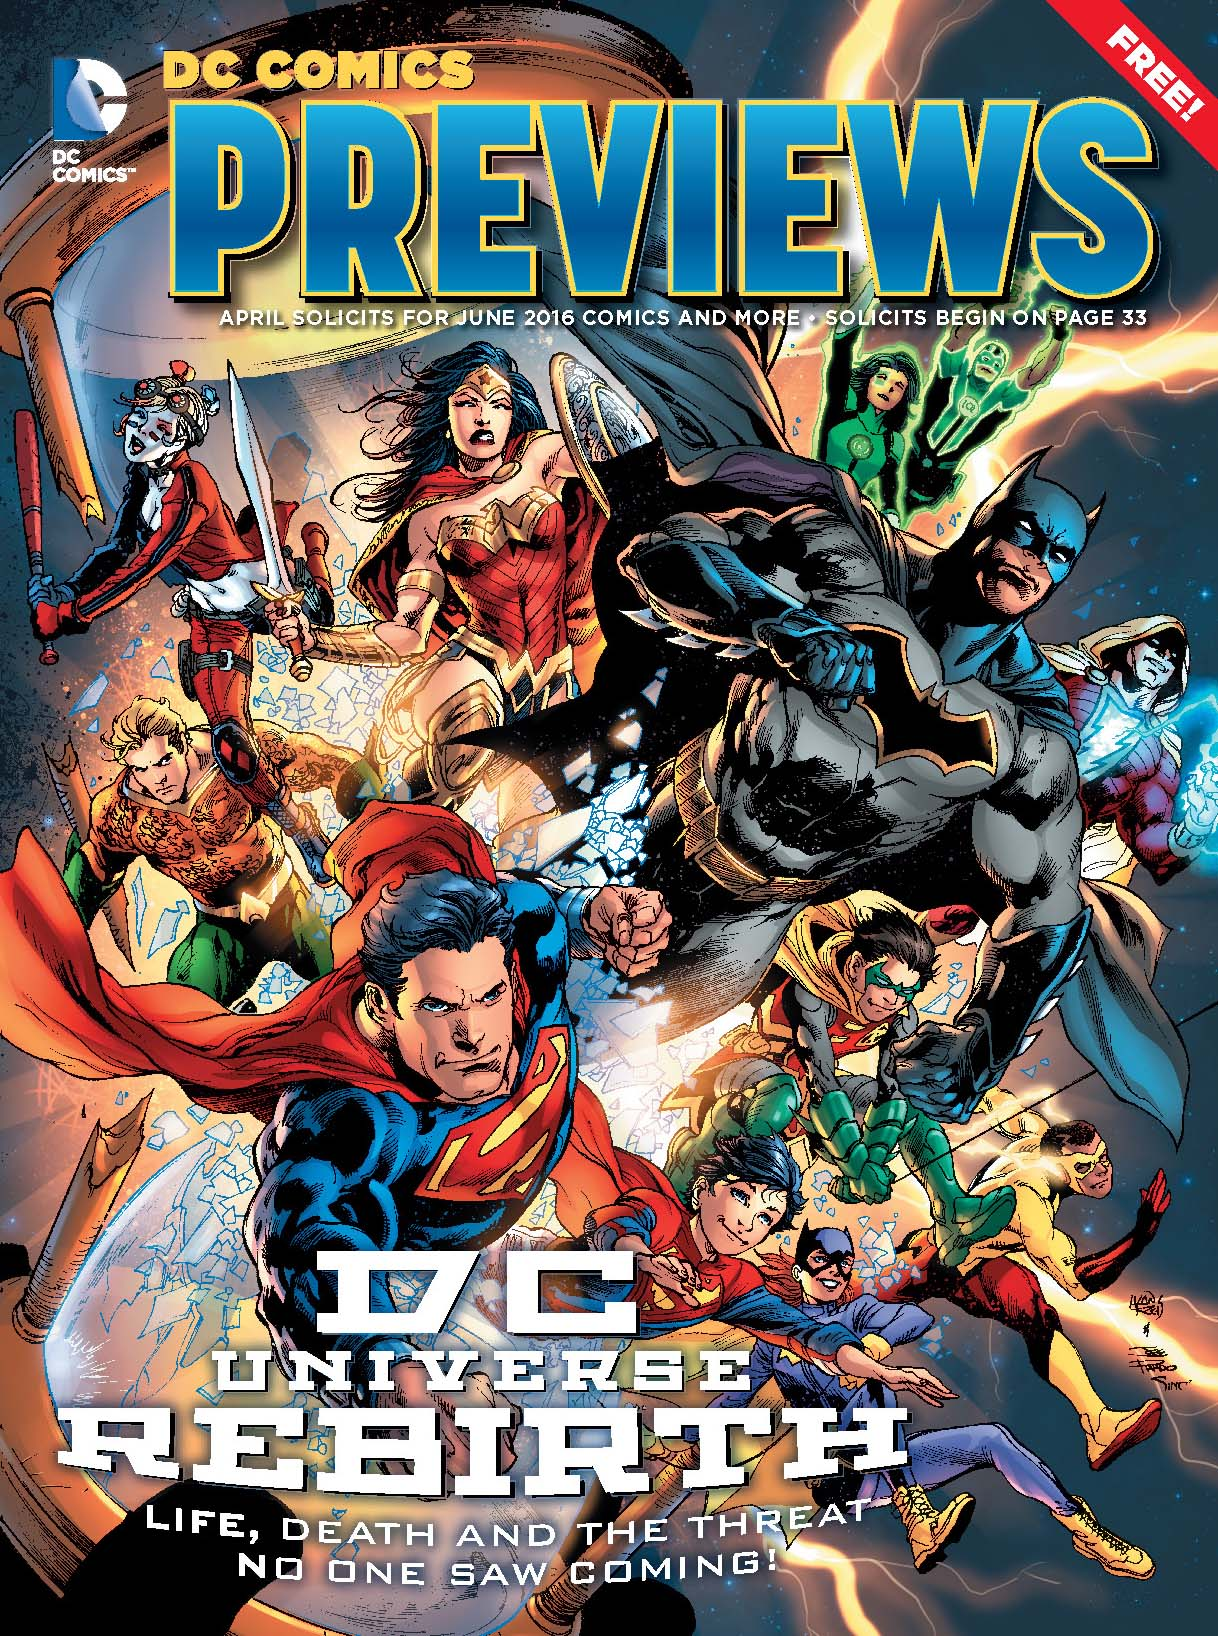 dc comics leaves main previews catologue from diamond